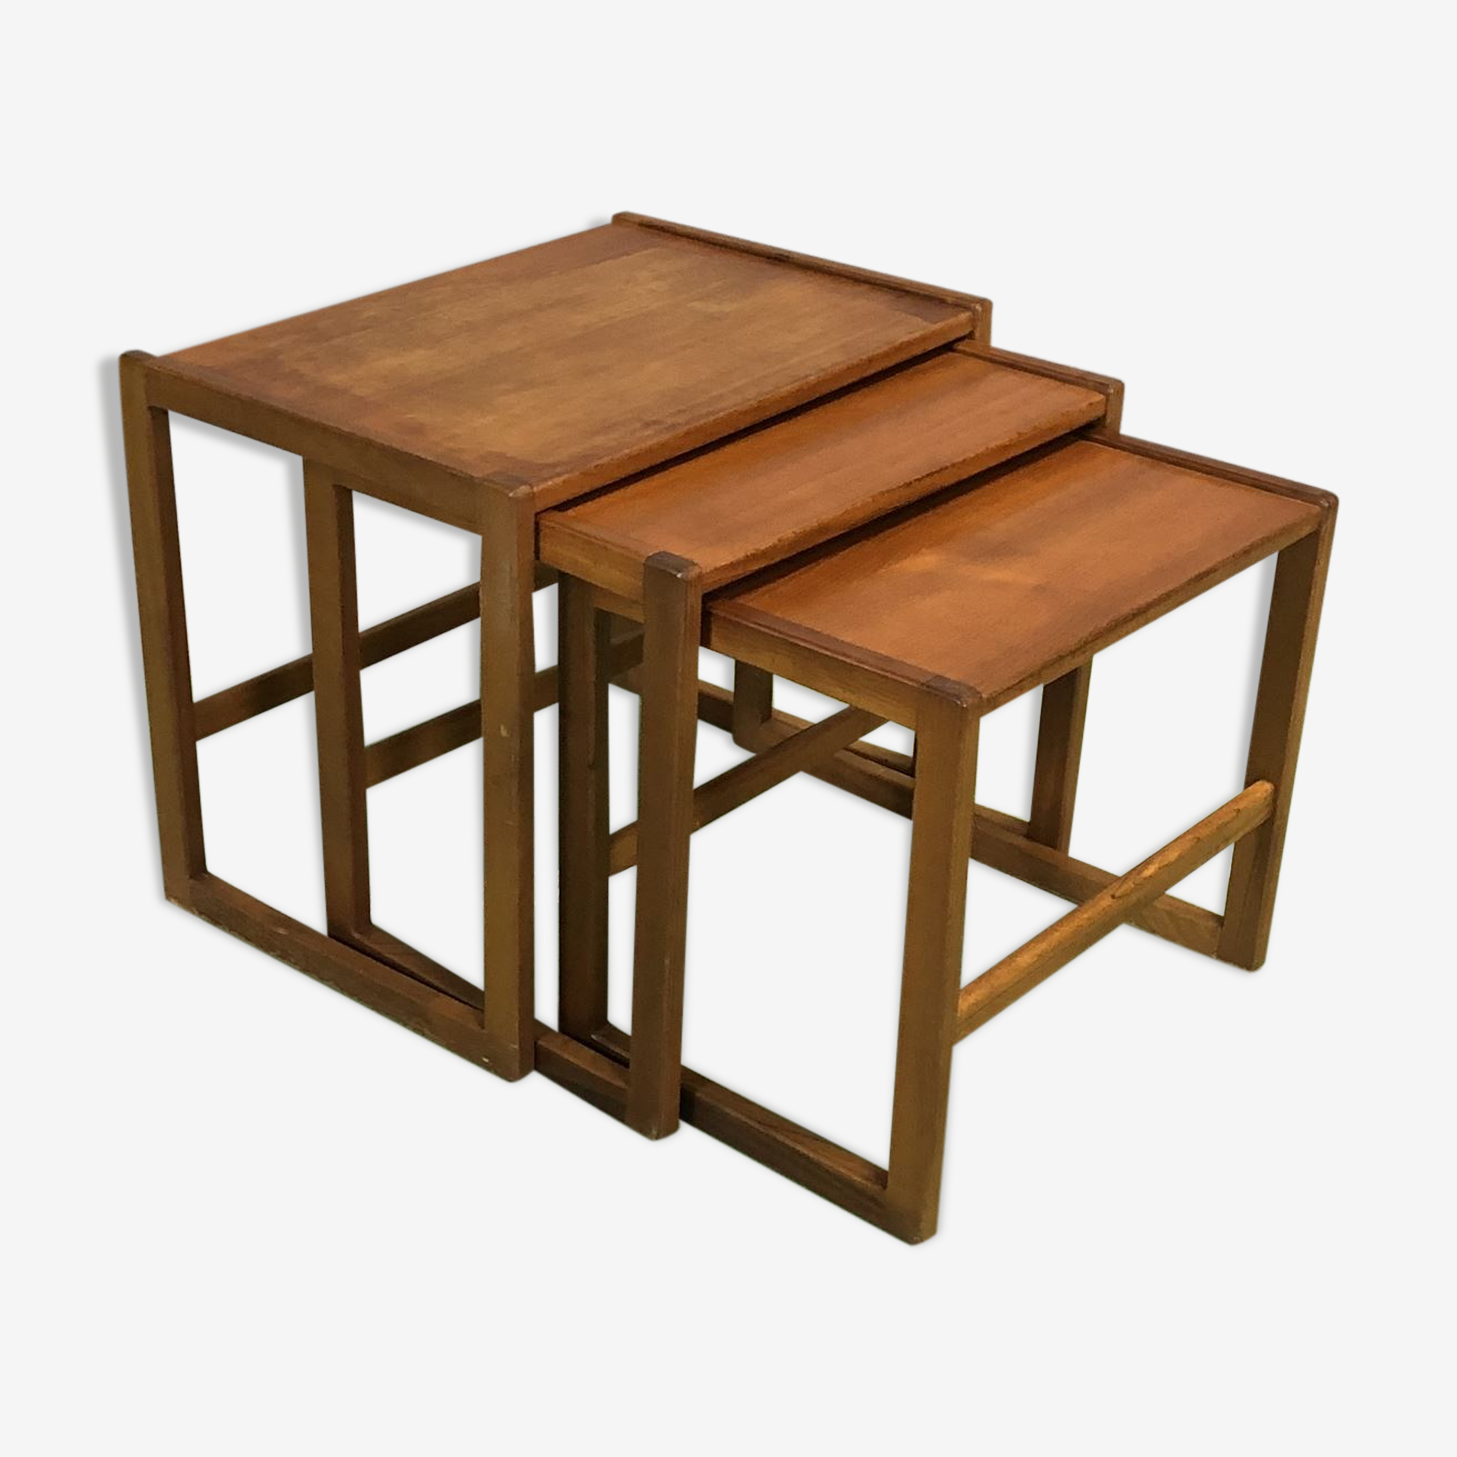 Pull-out tables in teak - 70s